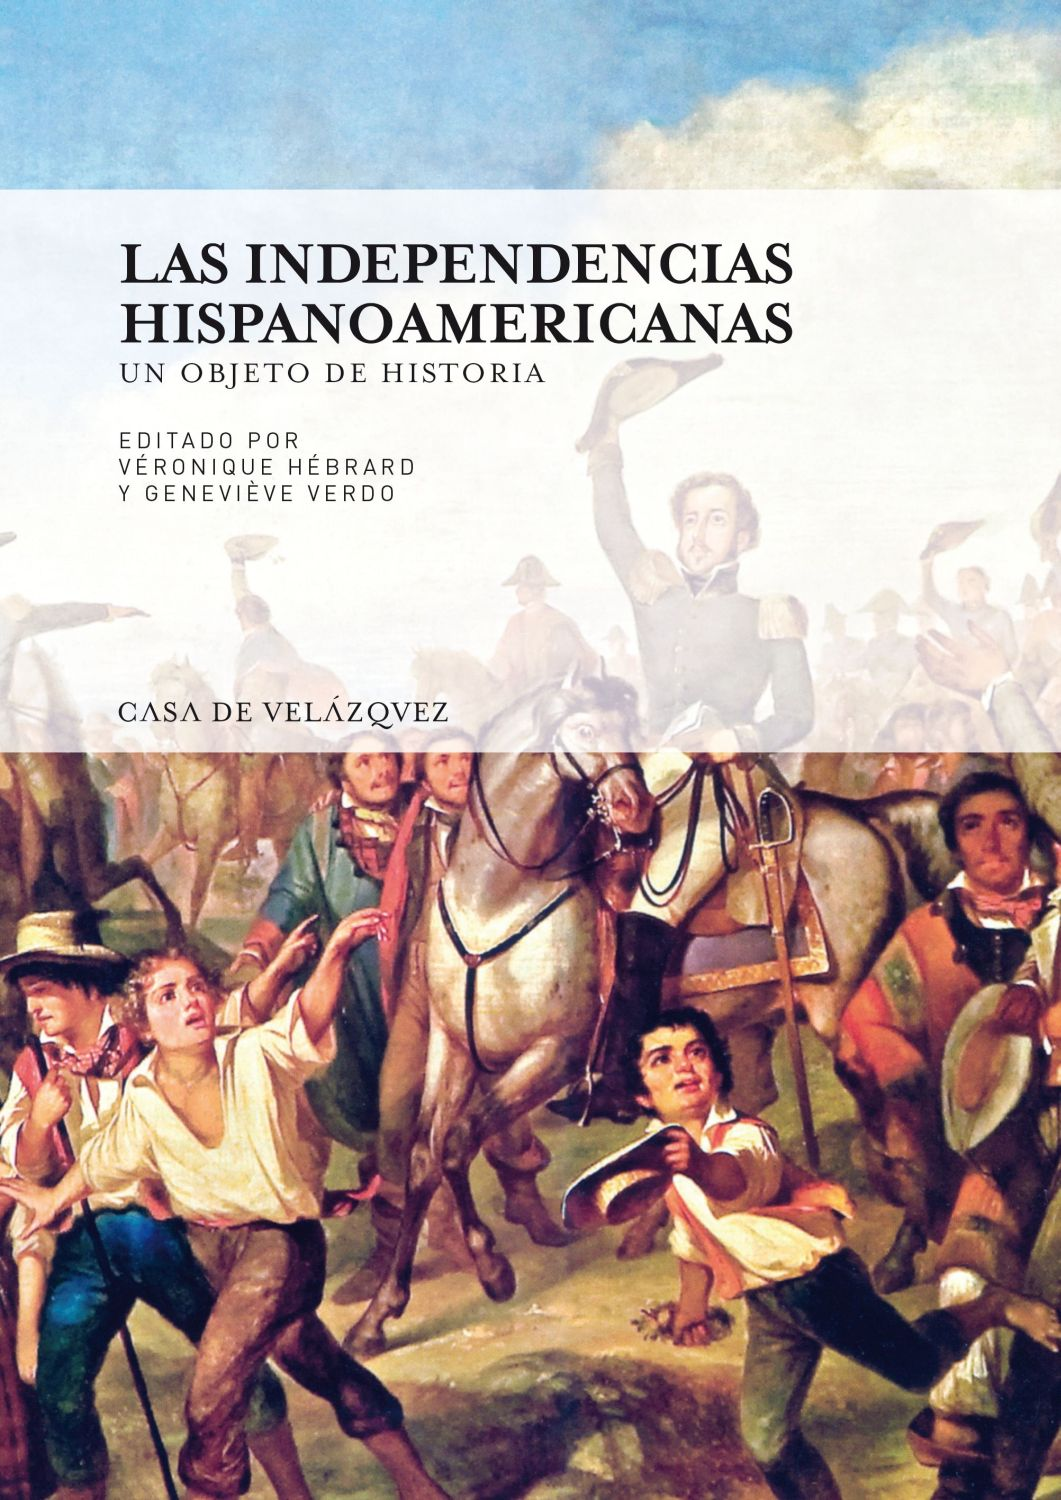 Las independencias hispanoamericanas